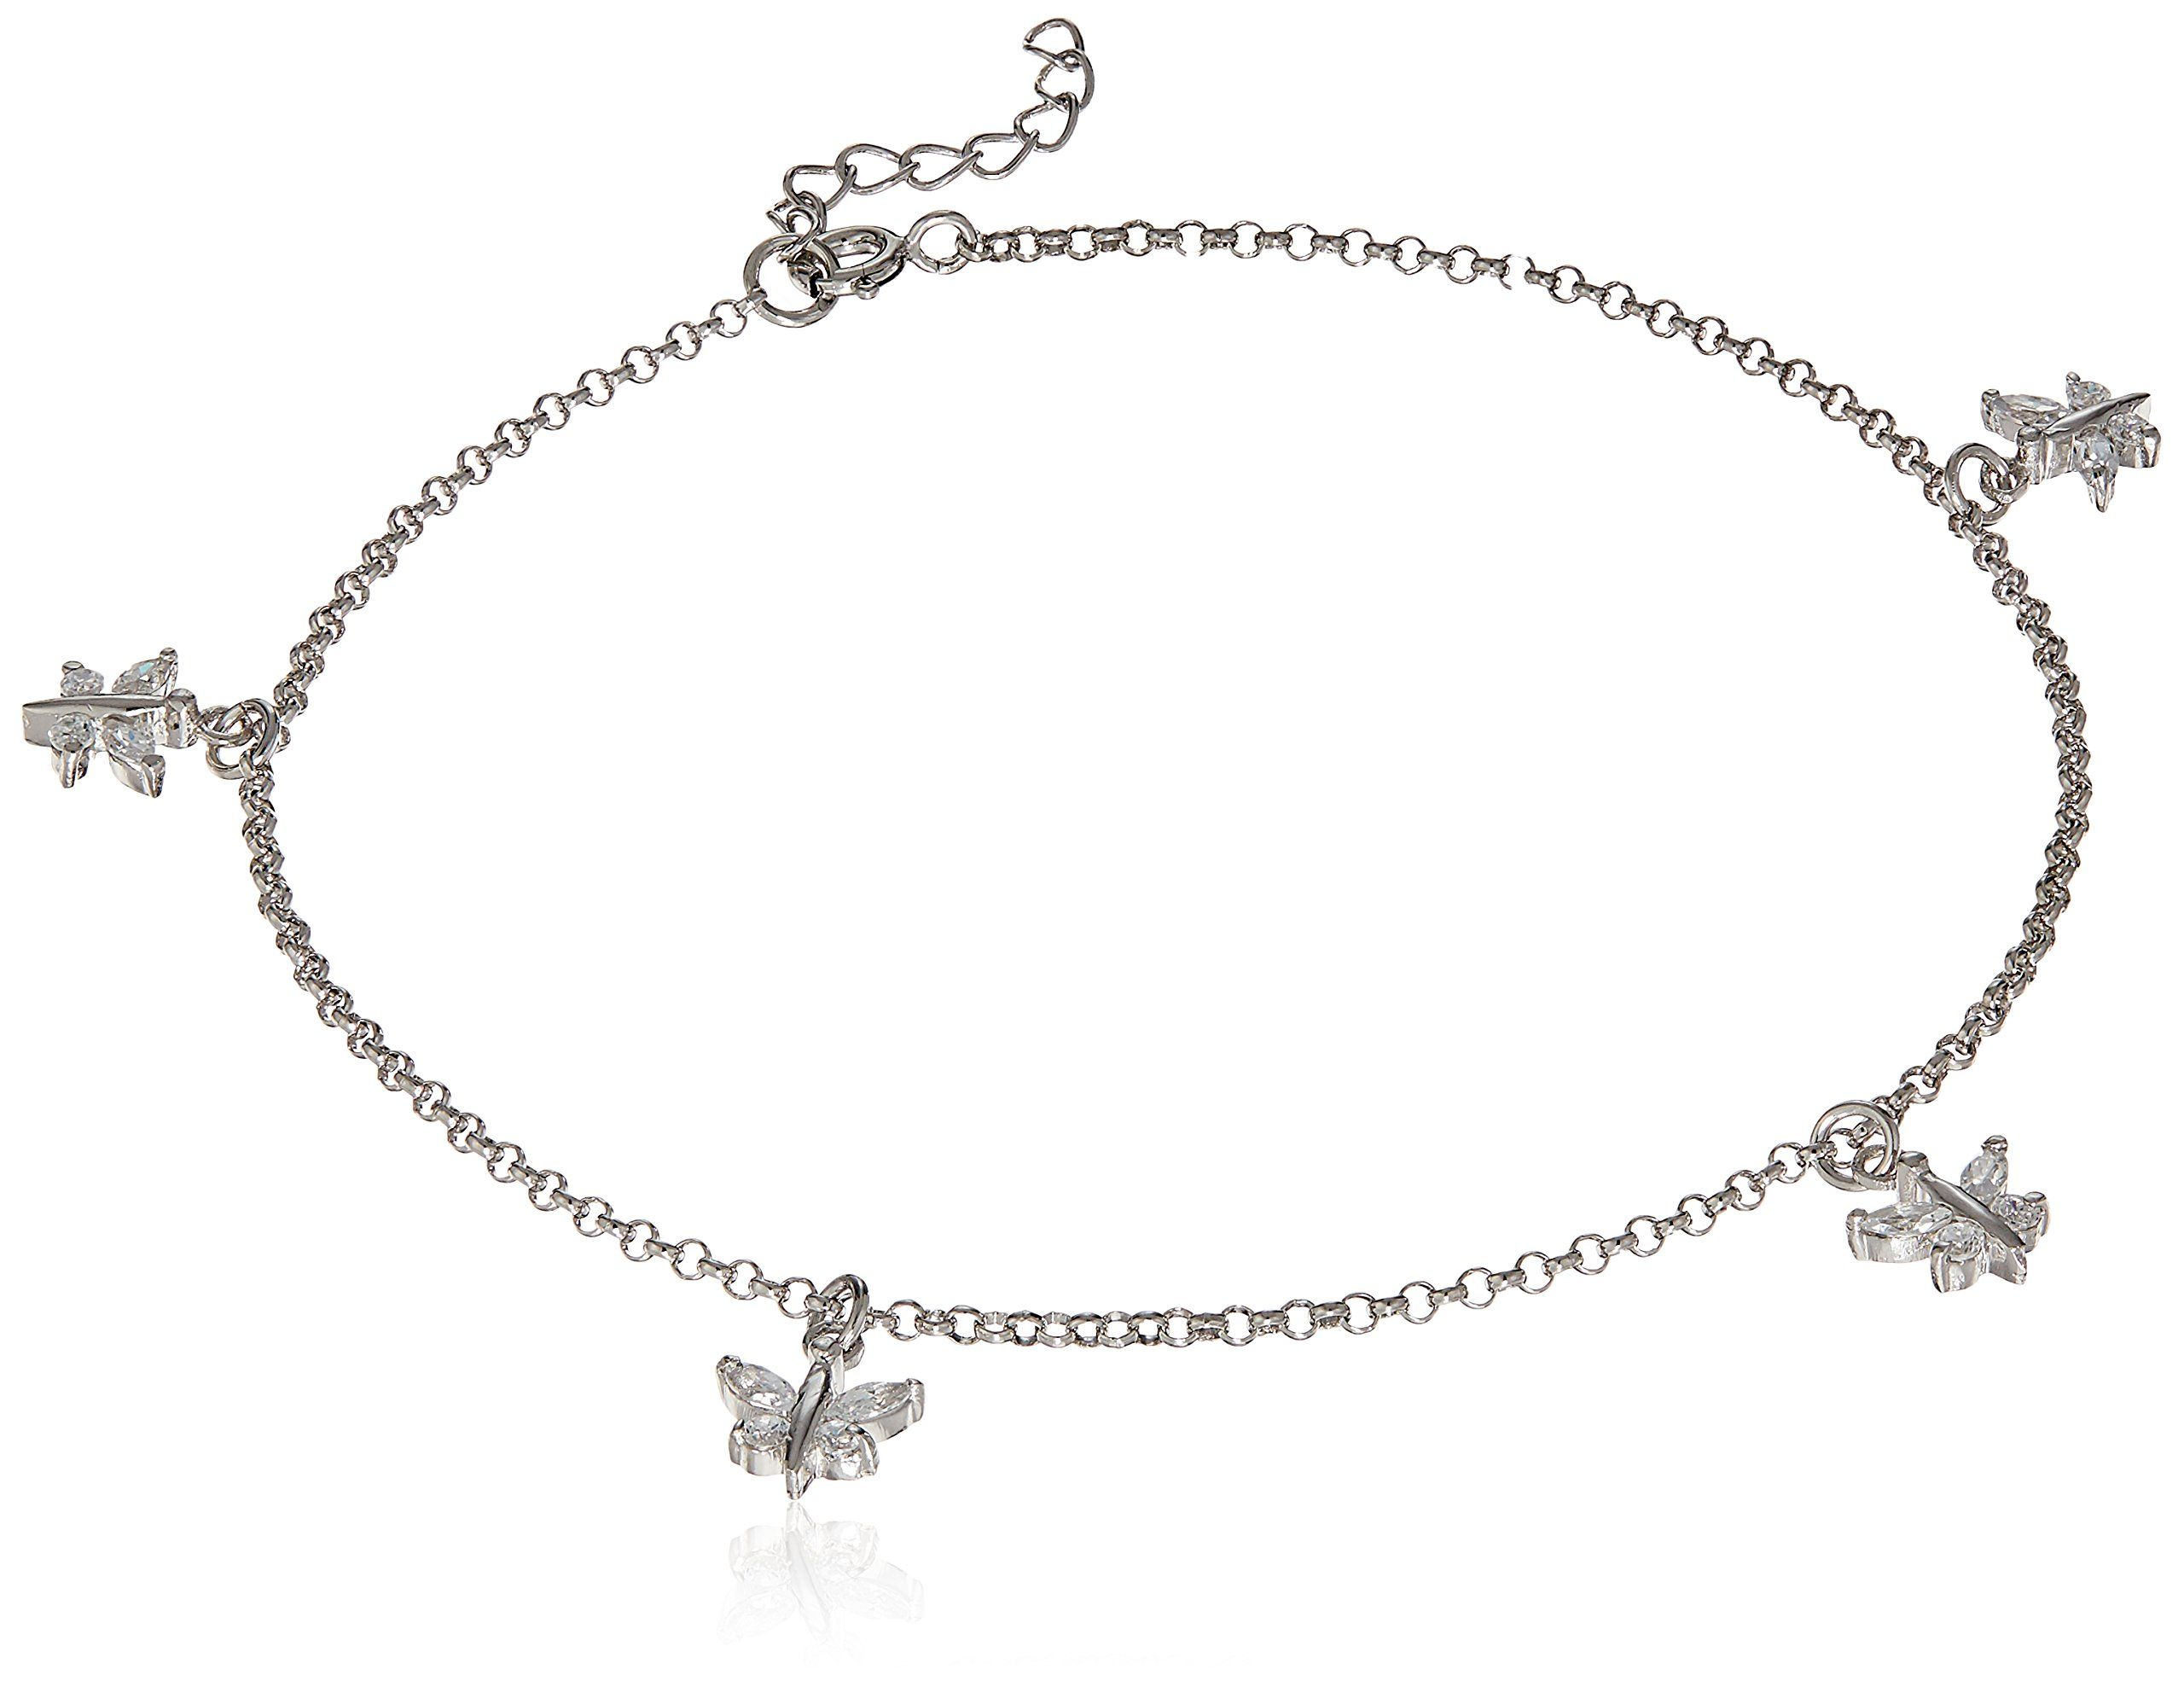 sterling graduated in default anklet cz necklace ct silver zirconia cubic t tennis w